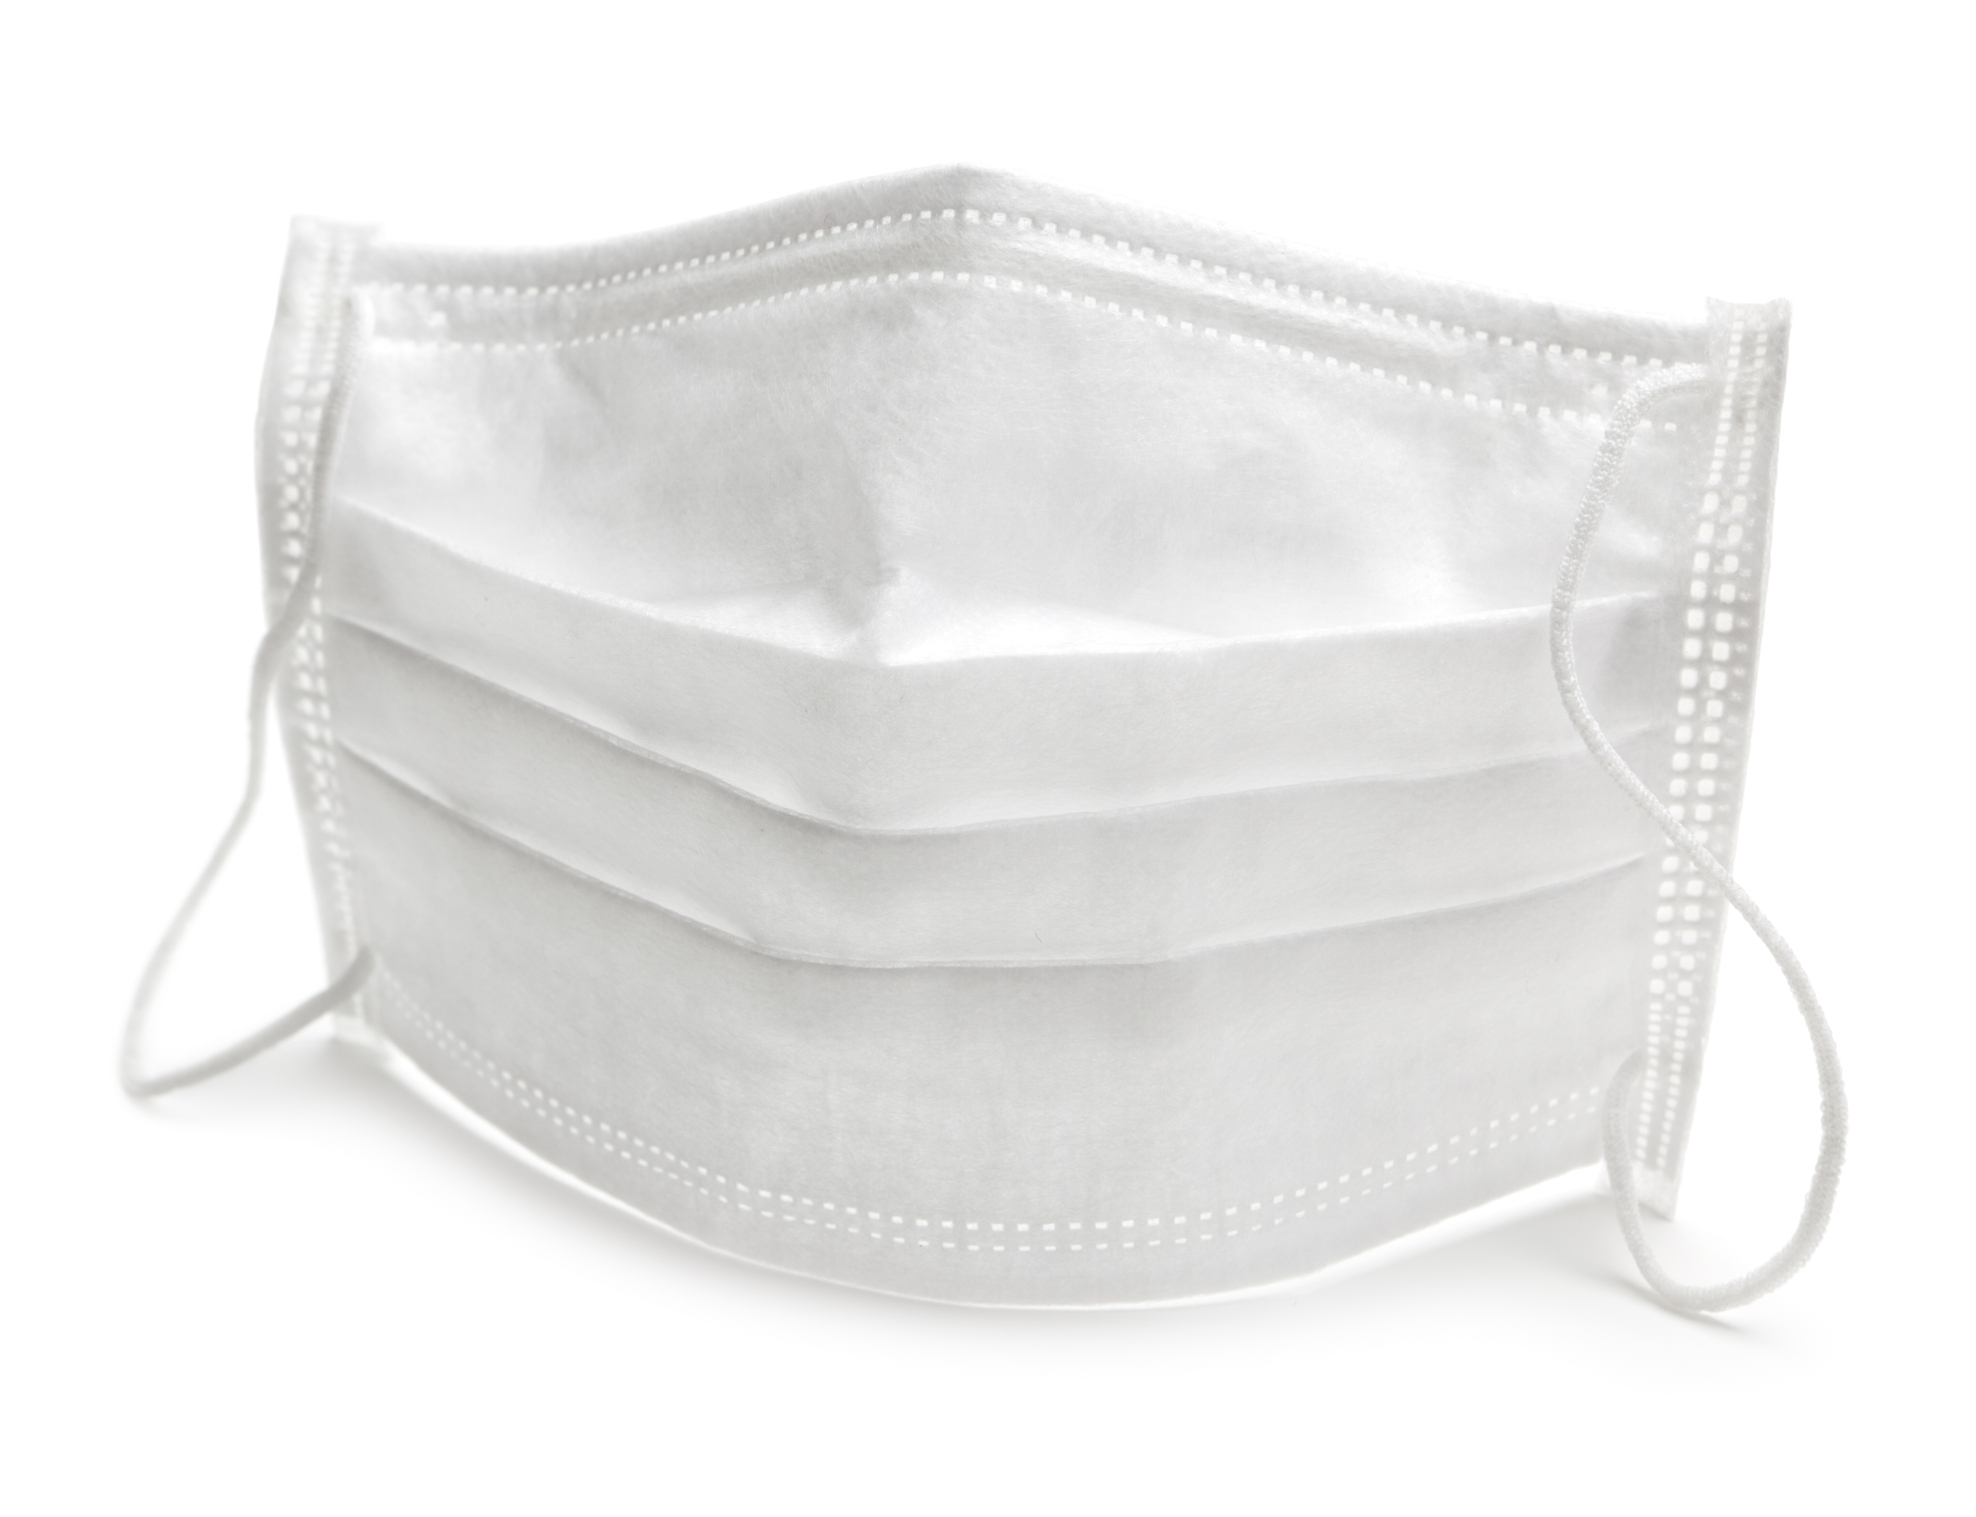 Medical face mask on white background